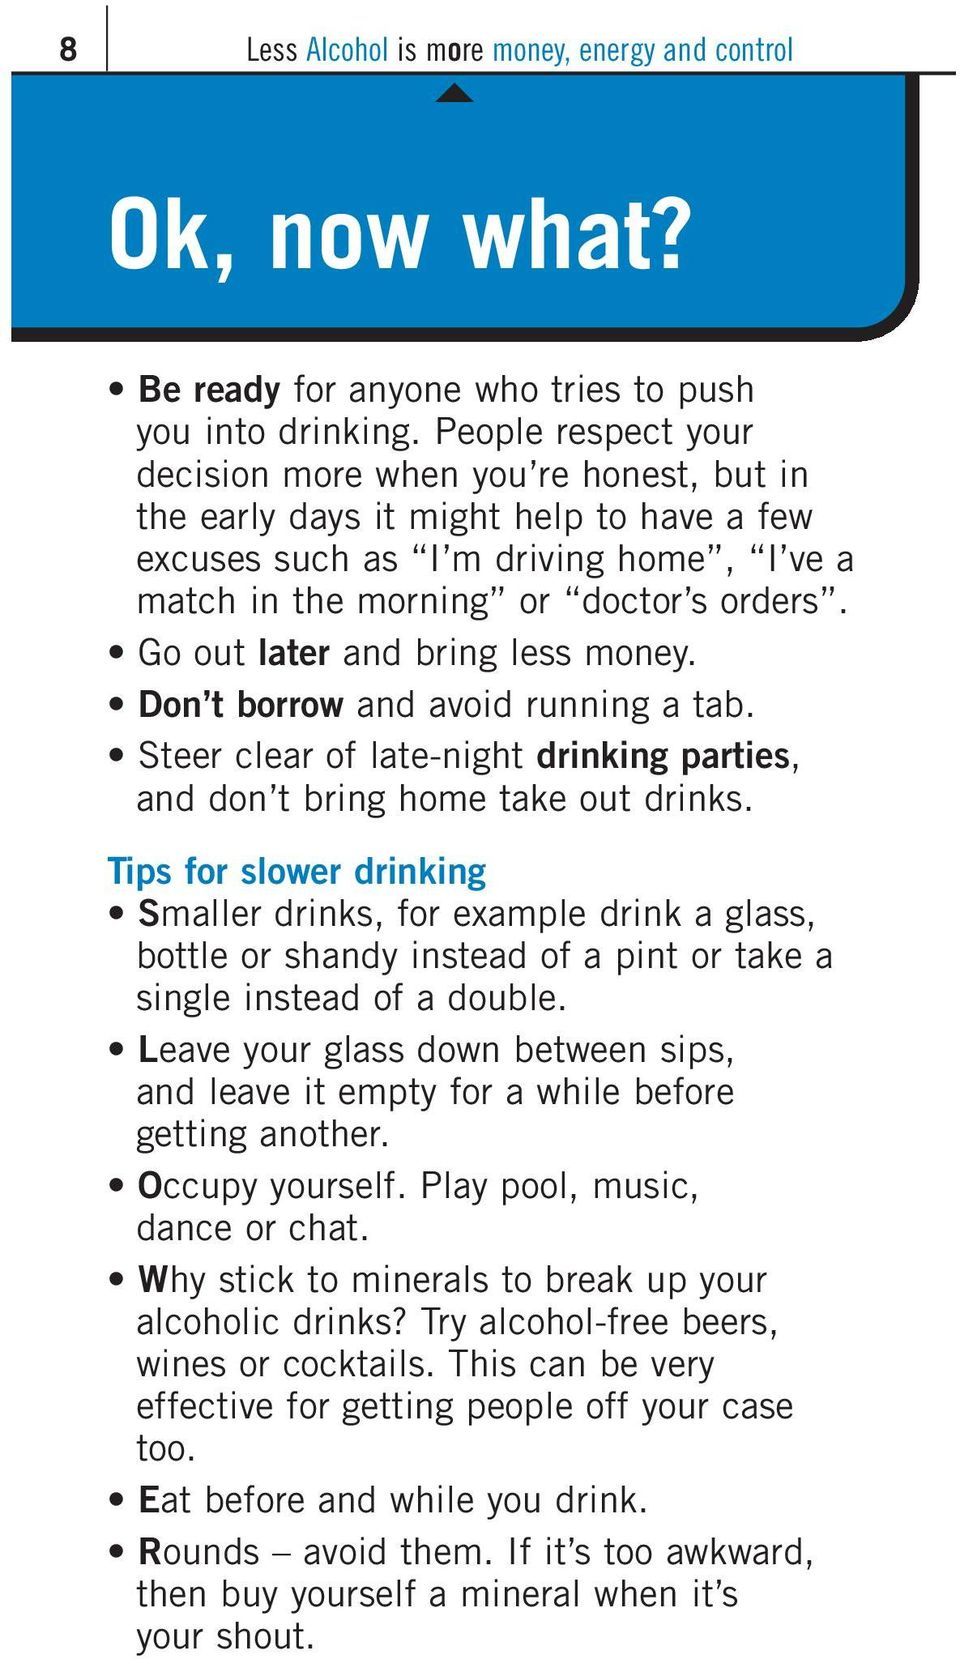 Go out later and bring less money. Don t borrow and avoid running a tab. Steer clear of late-night drinking parties, and don t bring home take out drinks.